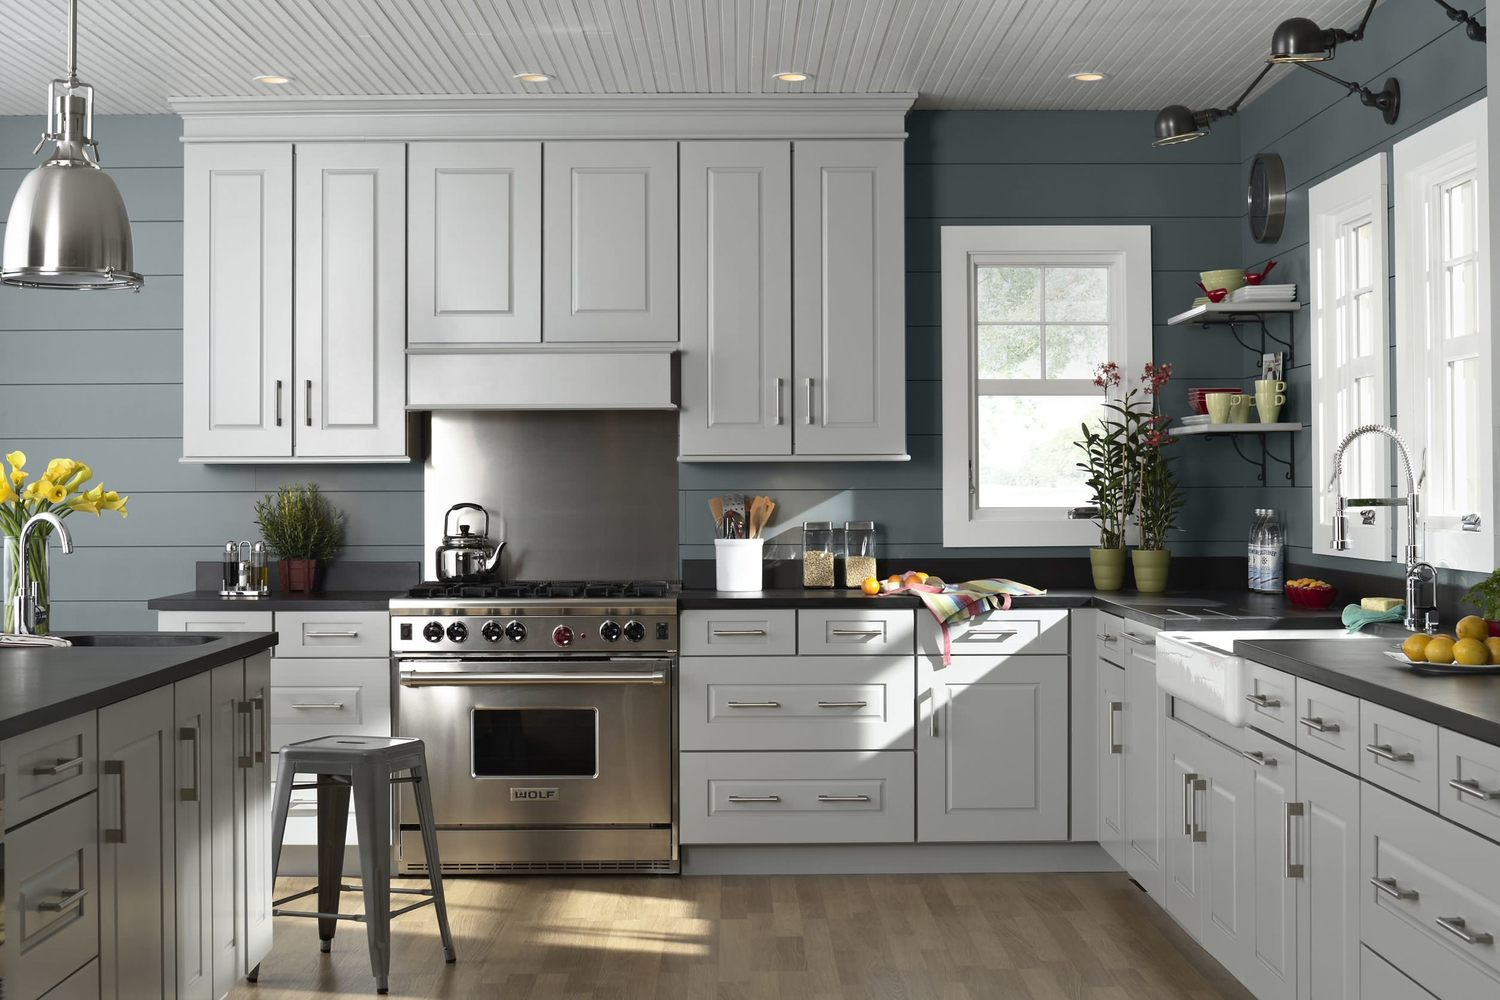 Scottsdale Cabinets - American Made Cabinetry